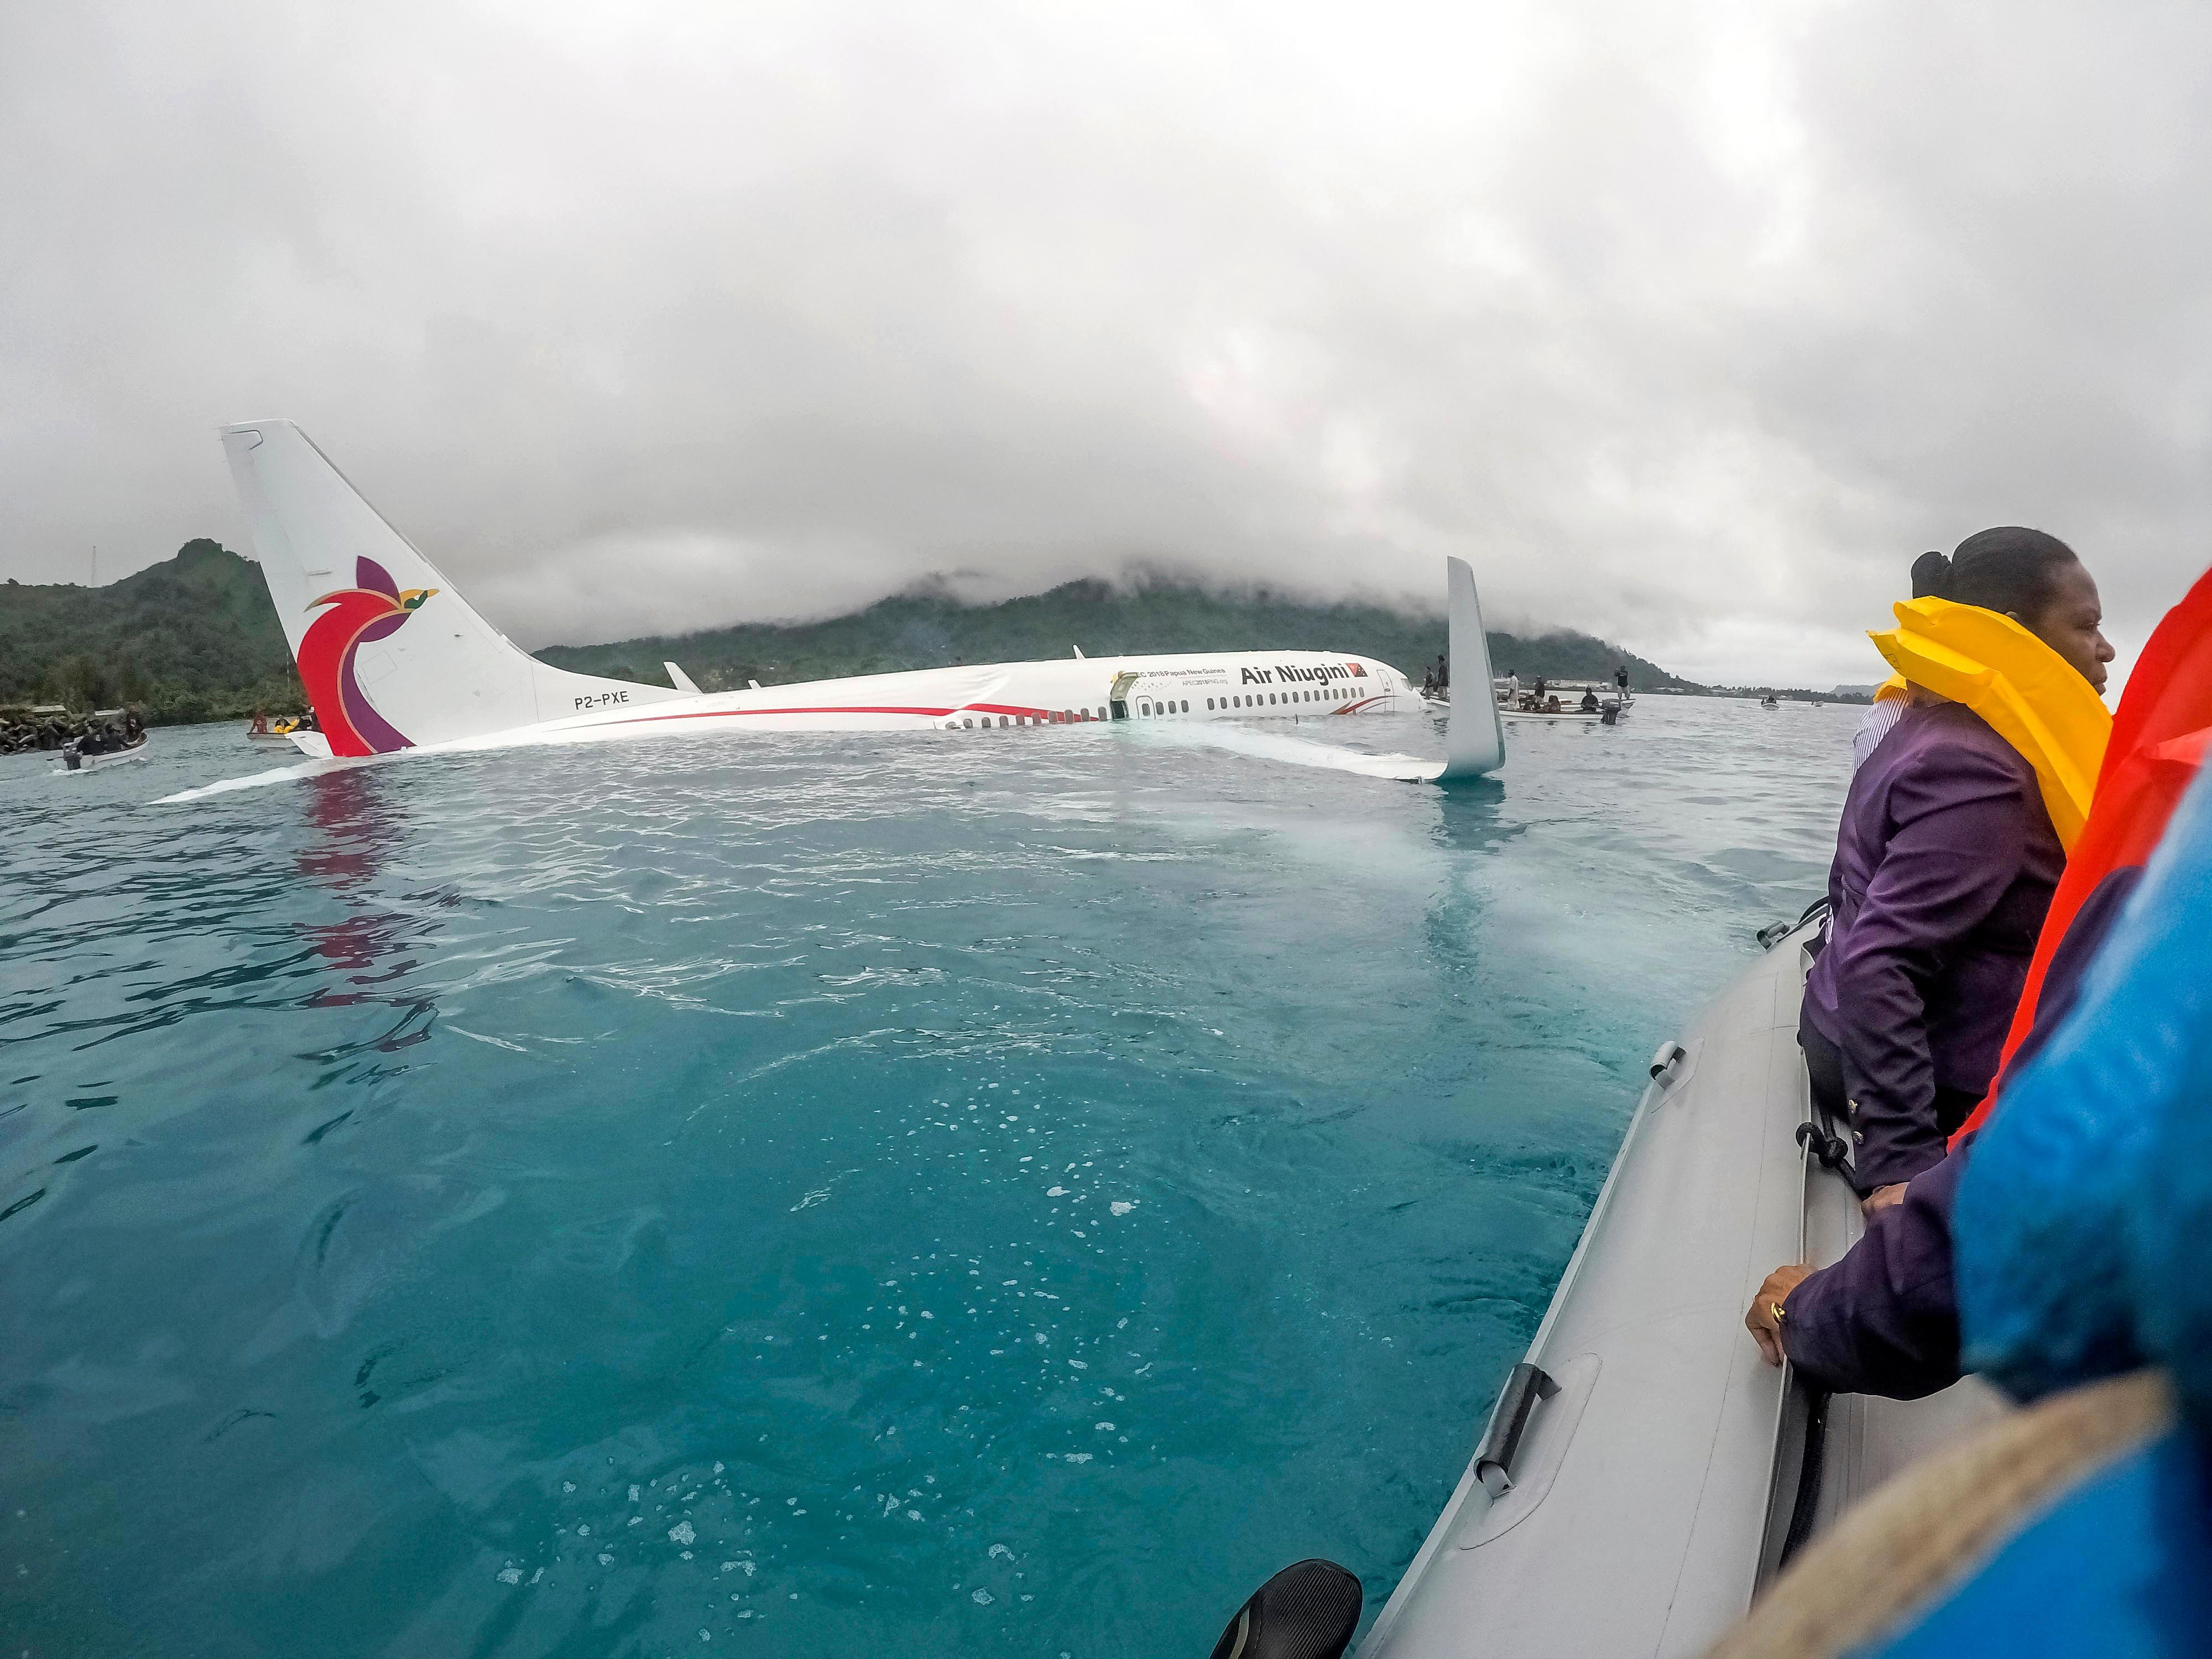 In this photo provided by the U.S. Navy, U.S. Navy Sailors from Underwater Construction Team (UCT) 2 assist local authorities in shuttling the passengers and crew of the Air Niugini flight to shore after the plane crashed into a lagoon on its approach to Chuuk International Airport in Micronesia., Friday, Sept. 28, 2018. All passengers and crew survived the plane's crash landing. (Lt. Zach Niezgodski/U.S. Navy via AP)